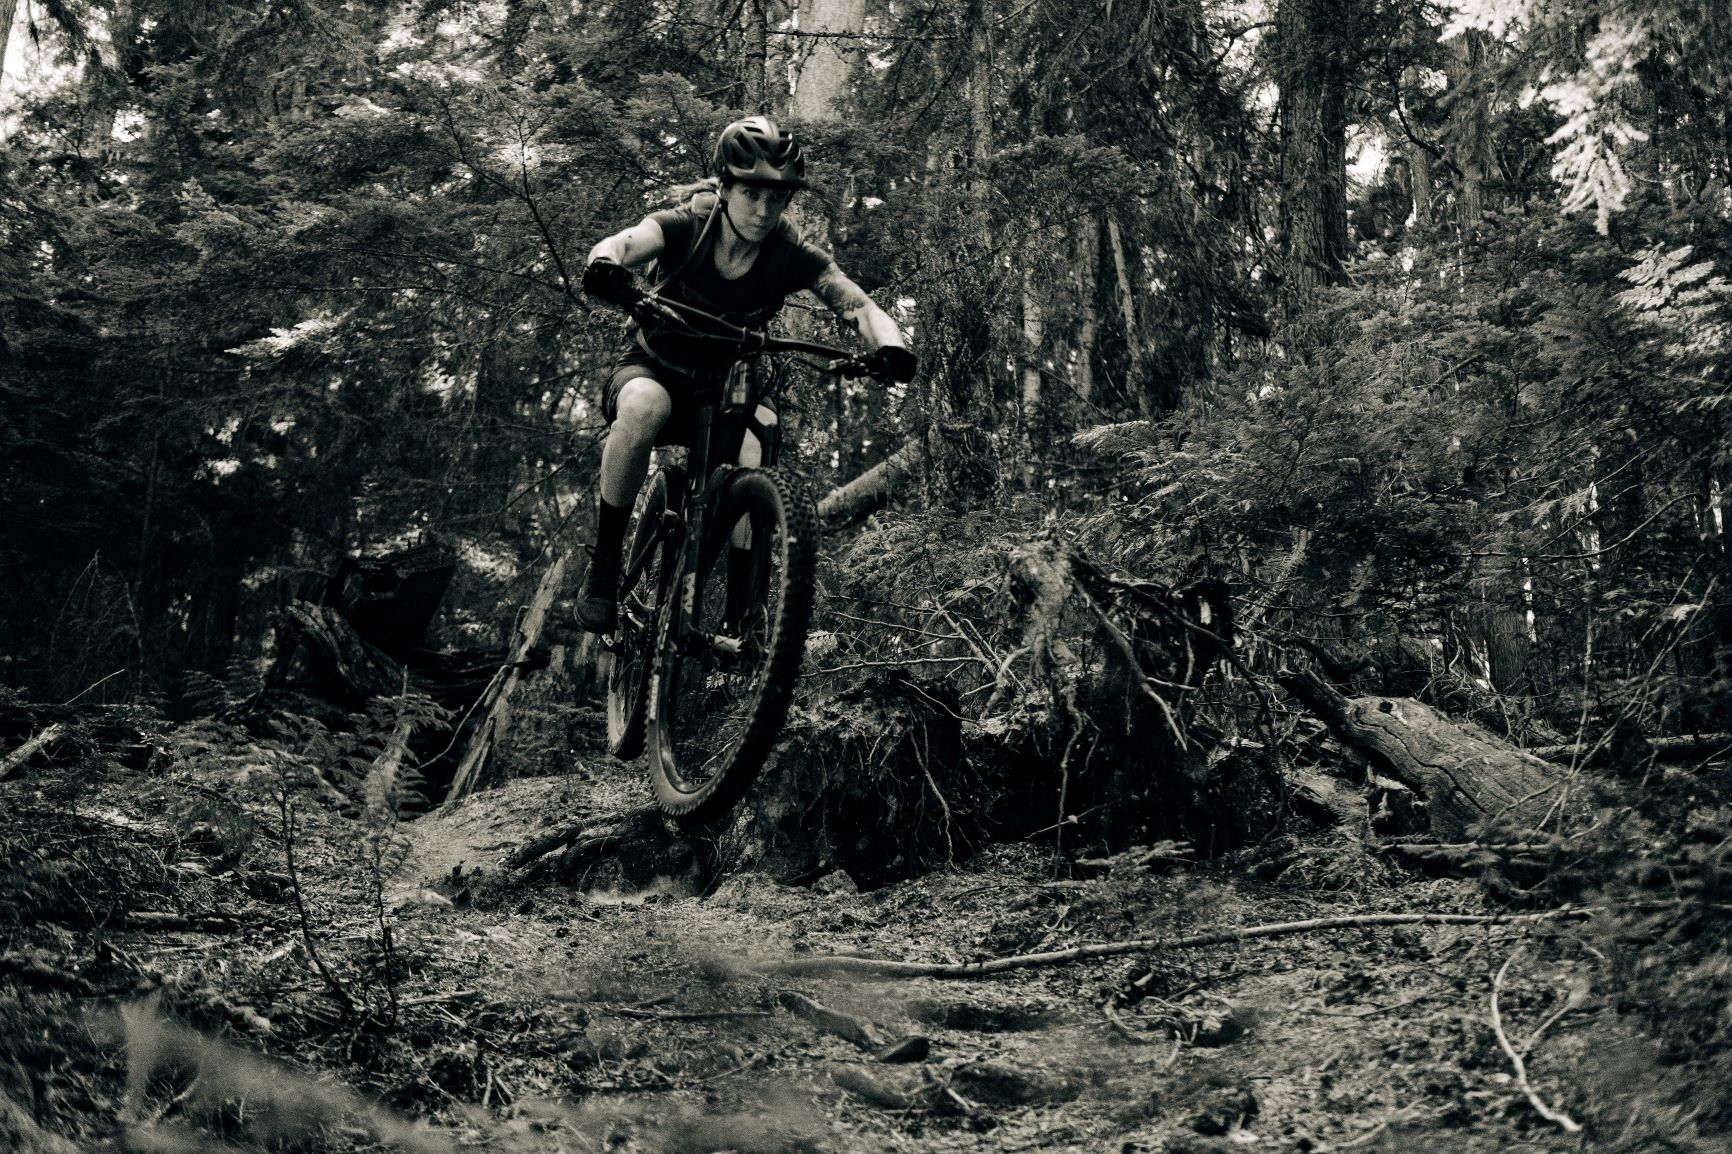 Woman mountain biking on a rugged, forested dirt trail in the Yaak wilderness of northwest Montana.